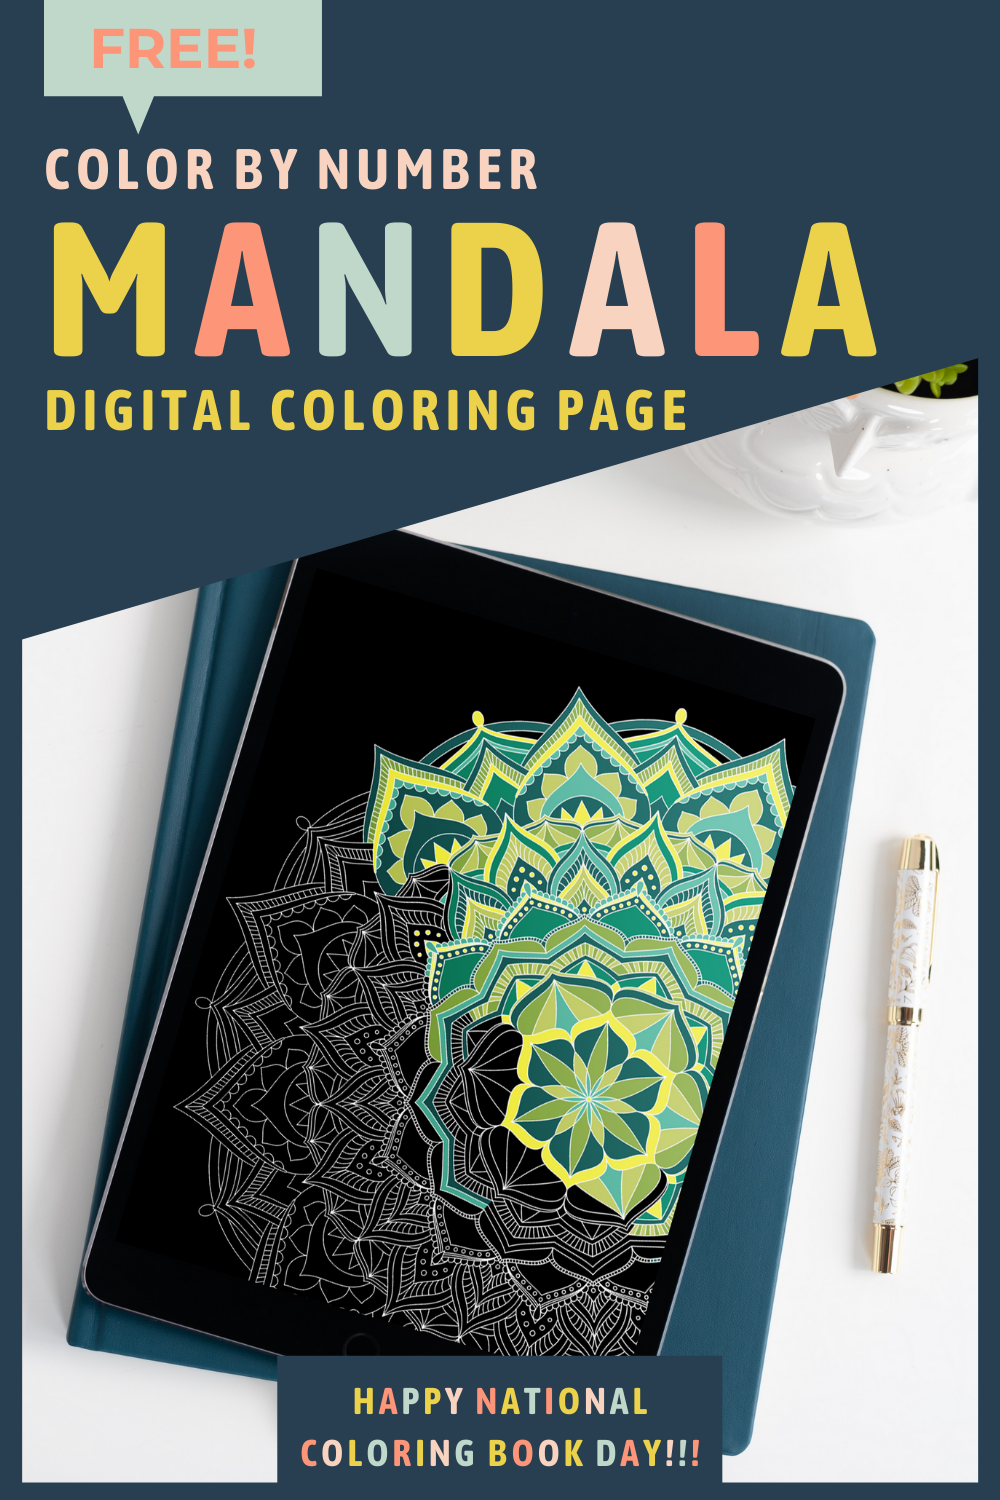 Free Color By Number Mandala Digital Coloring Page